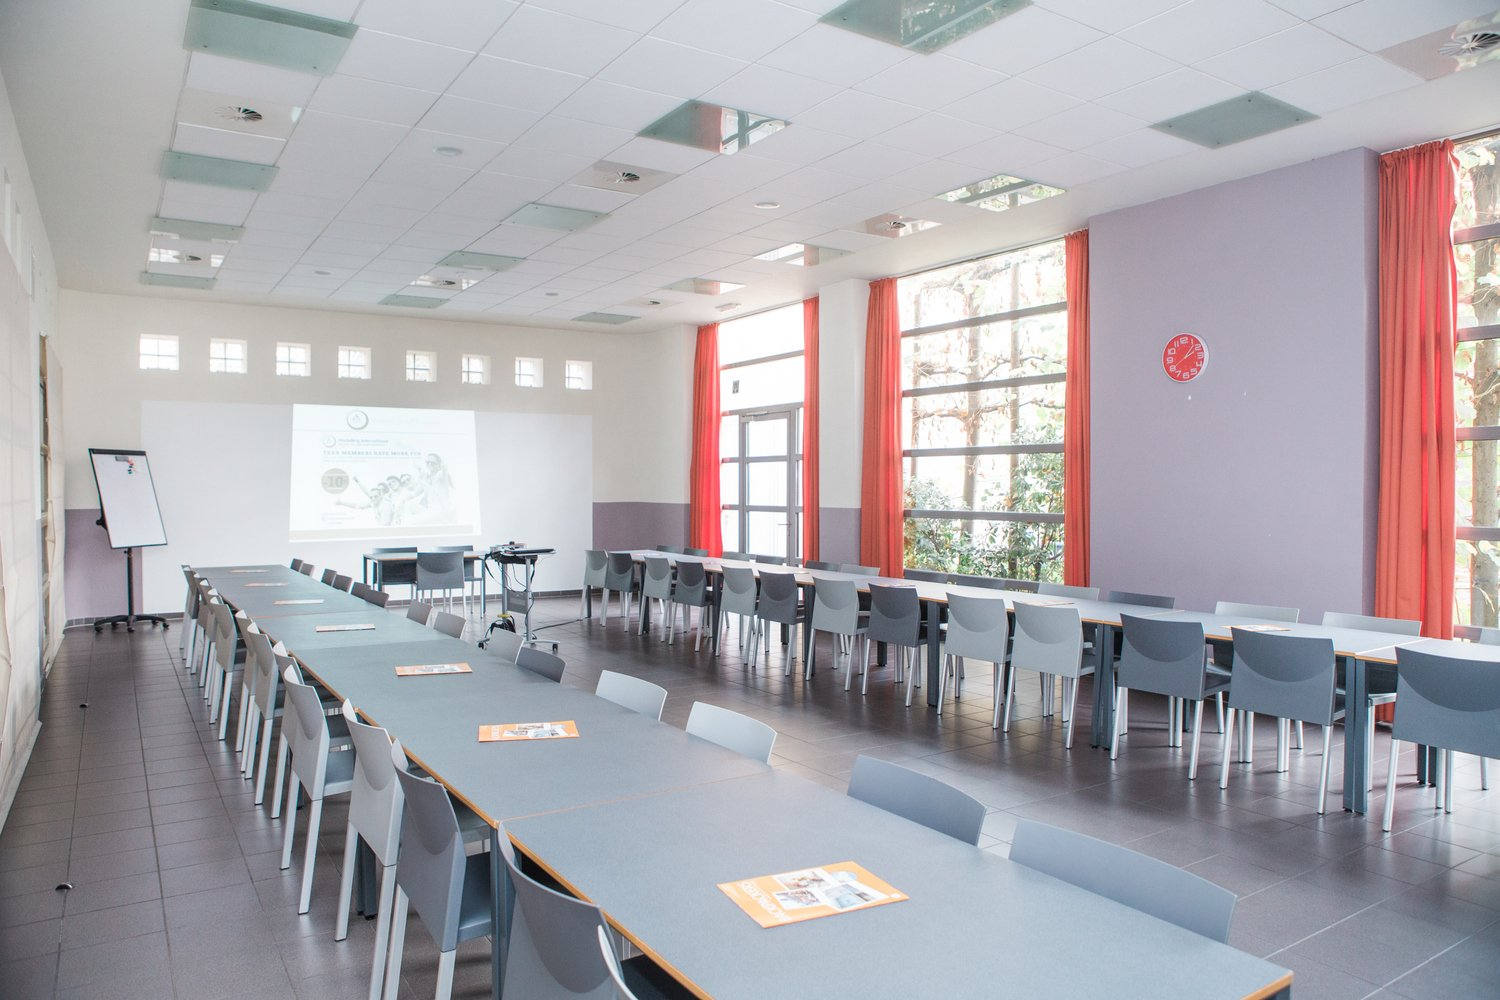 Vergaderzaal - meeting room